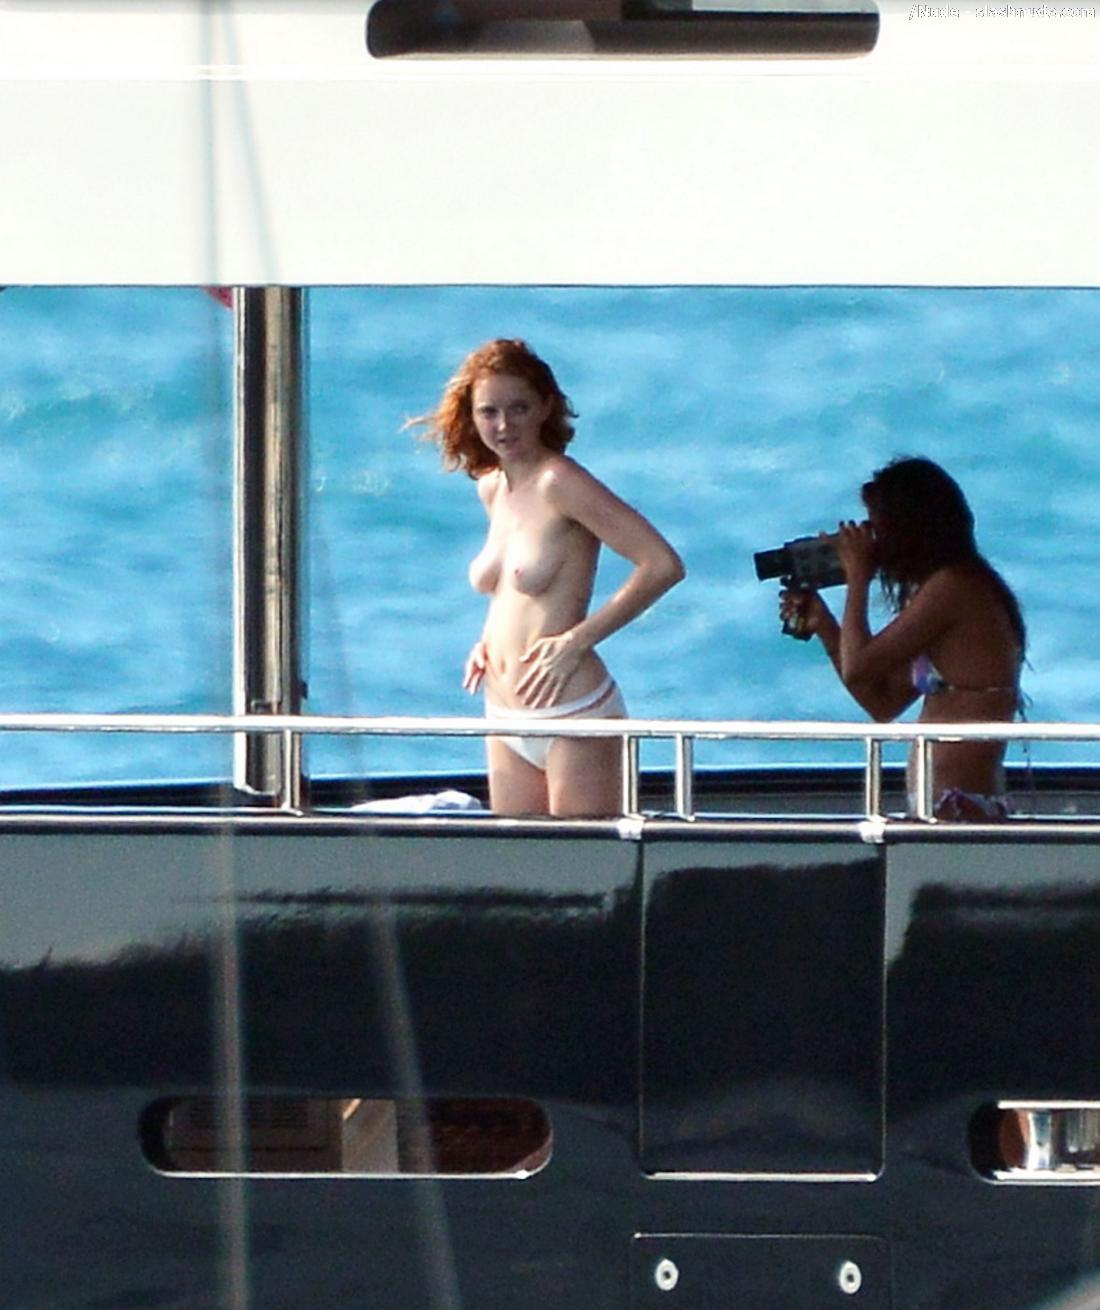 Very Lily cole naked think, what